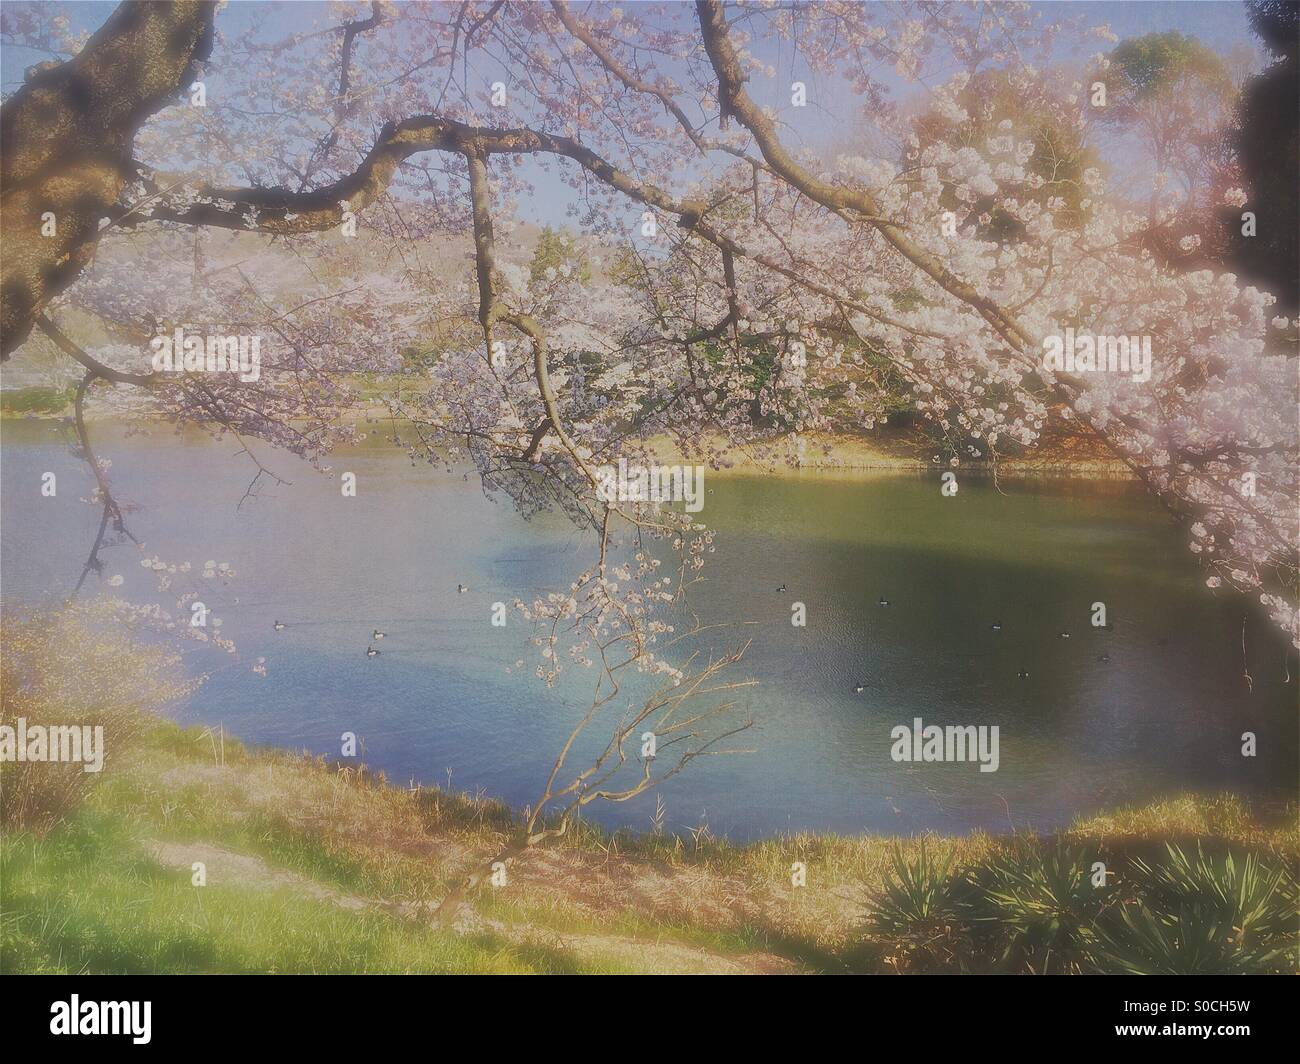 Lovely pond in Spring with ducks surrounded by white cherry blossoms. Vintage, painterly textures overlay and soft - Stock Image